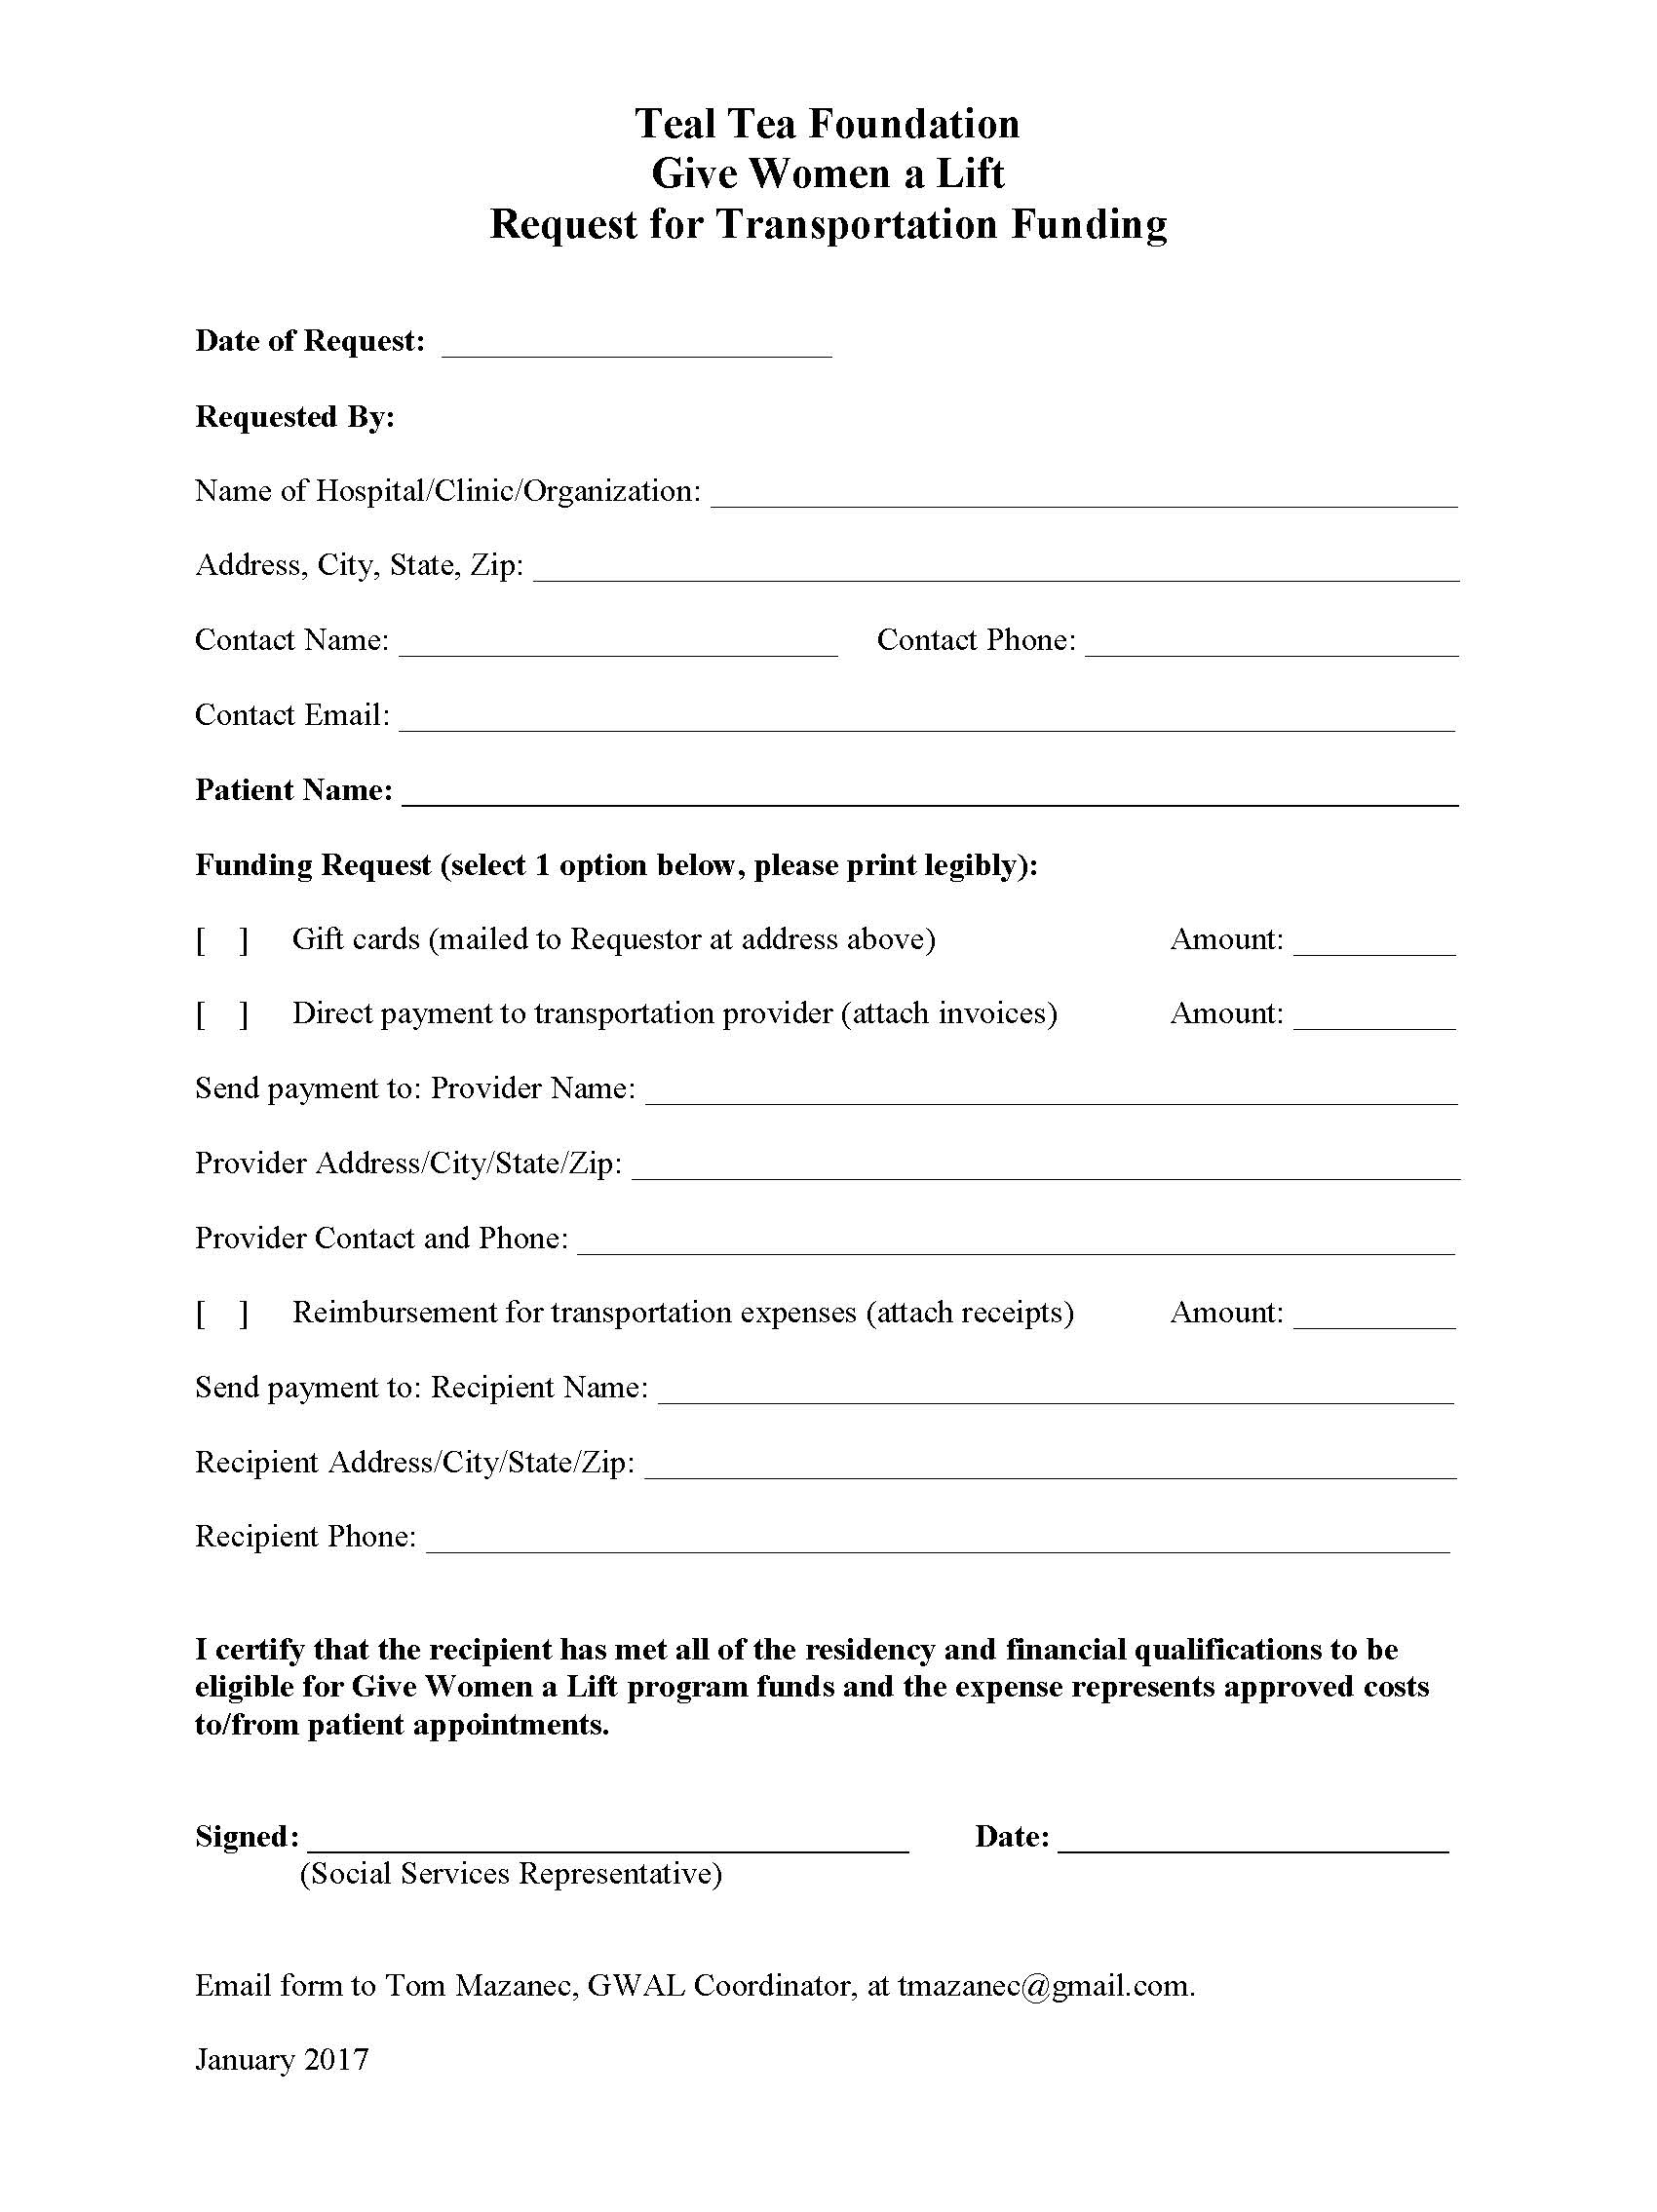 TTF GWAL Application Form_Jan 2017.jpg